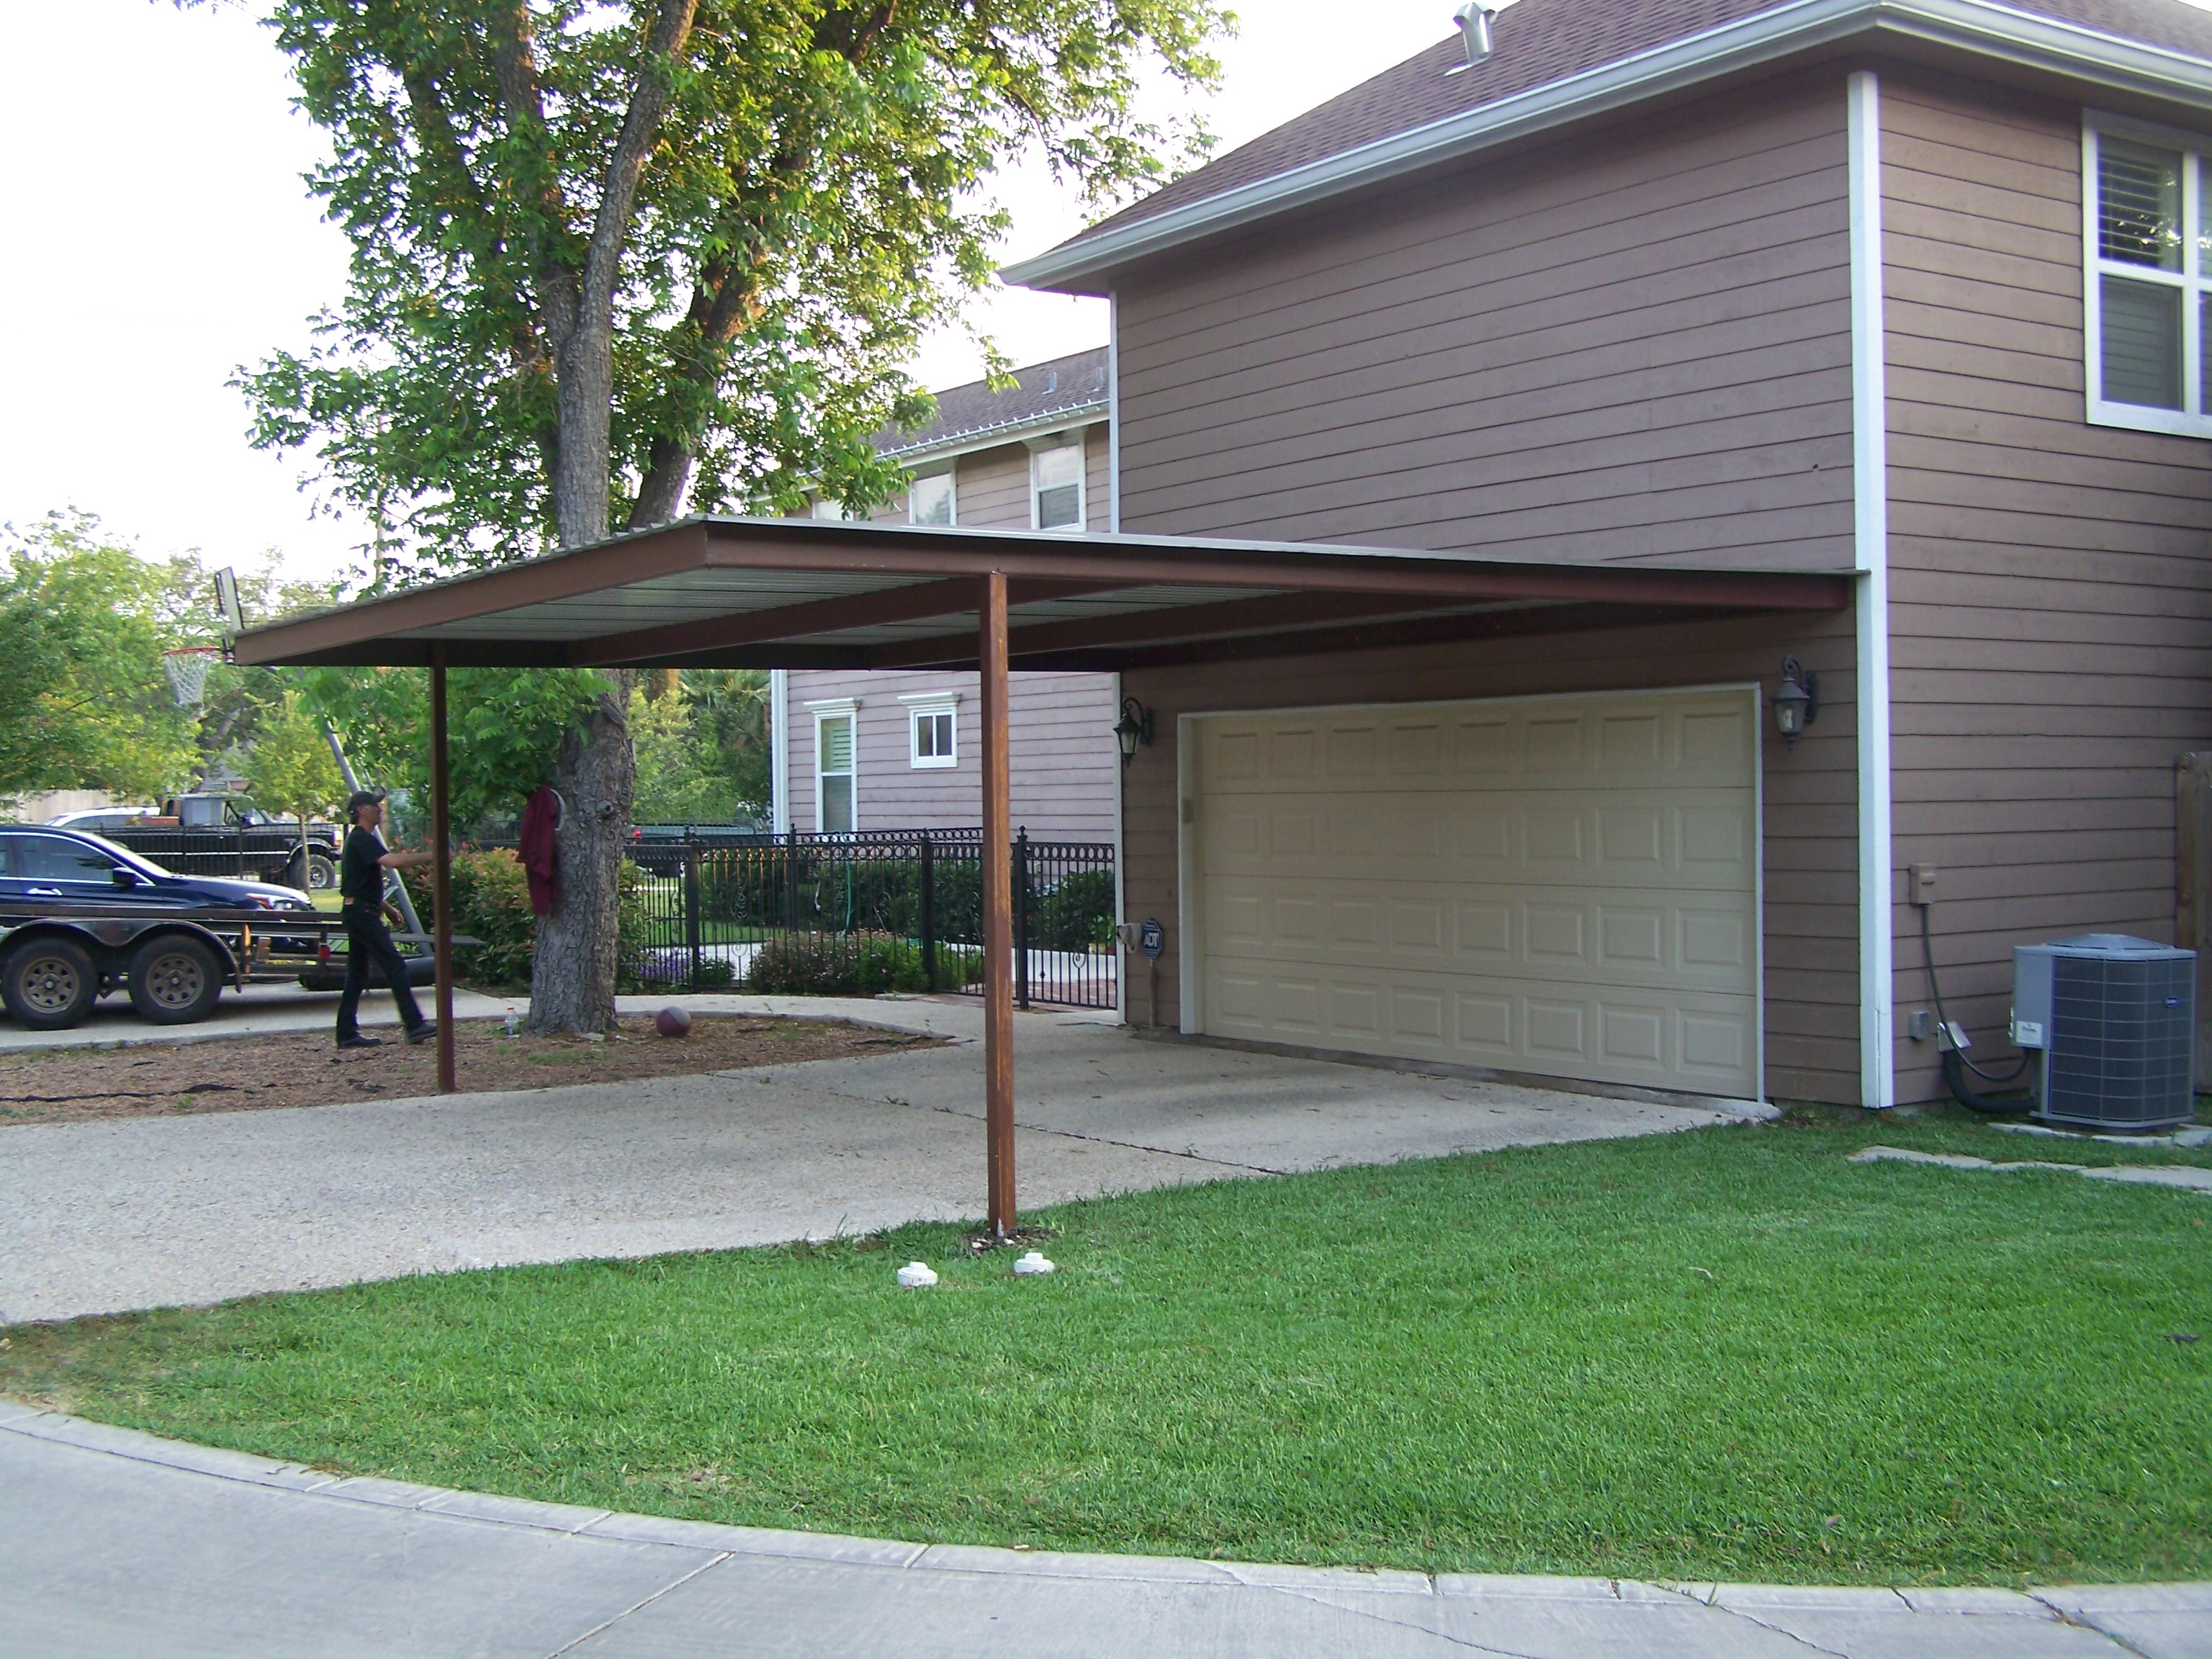 Alamo heights attached carport carport patio covers for Carport with storage shed attached